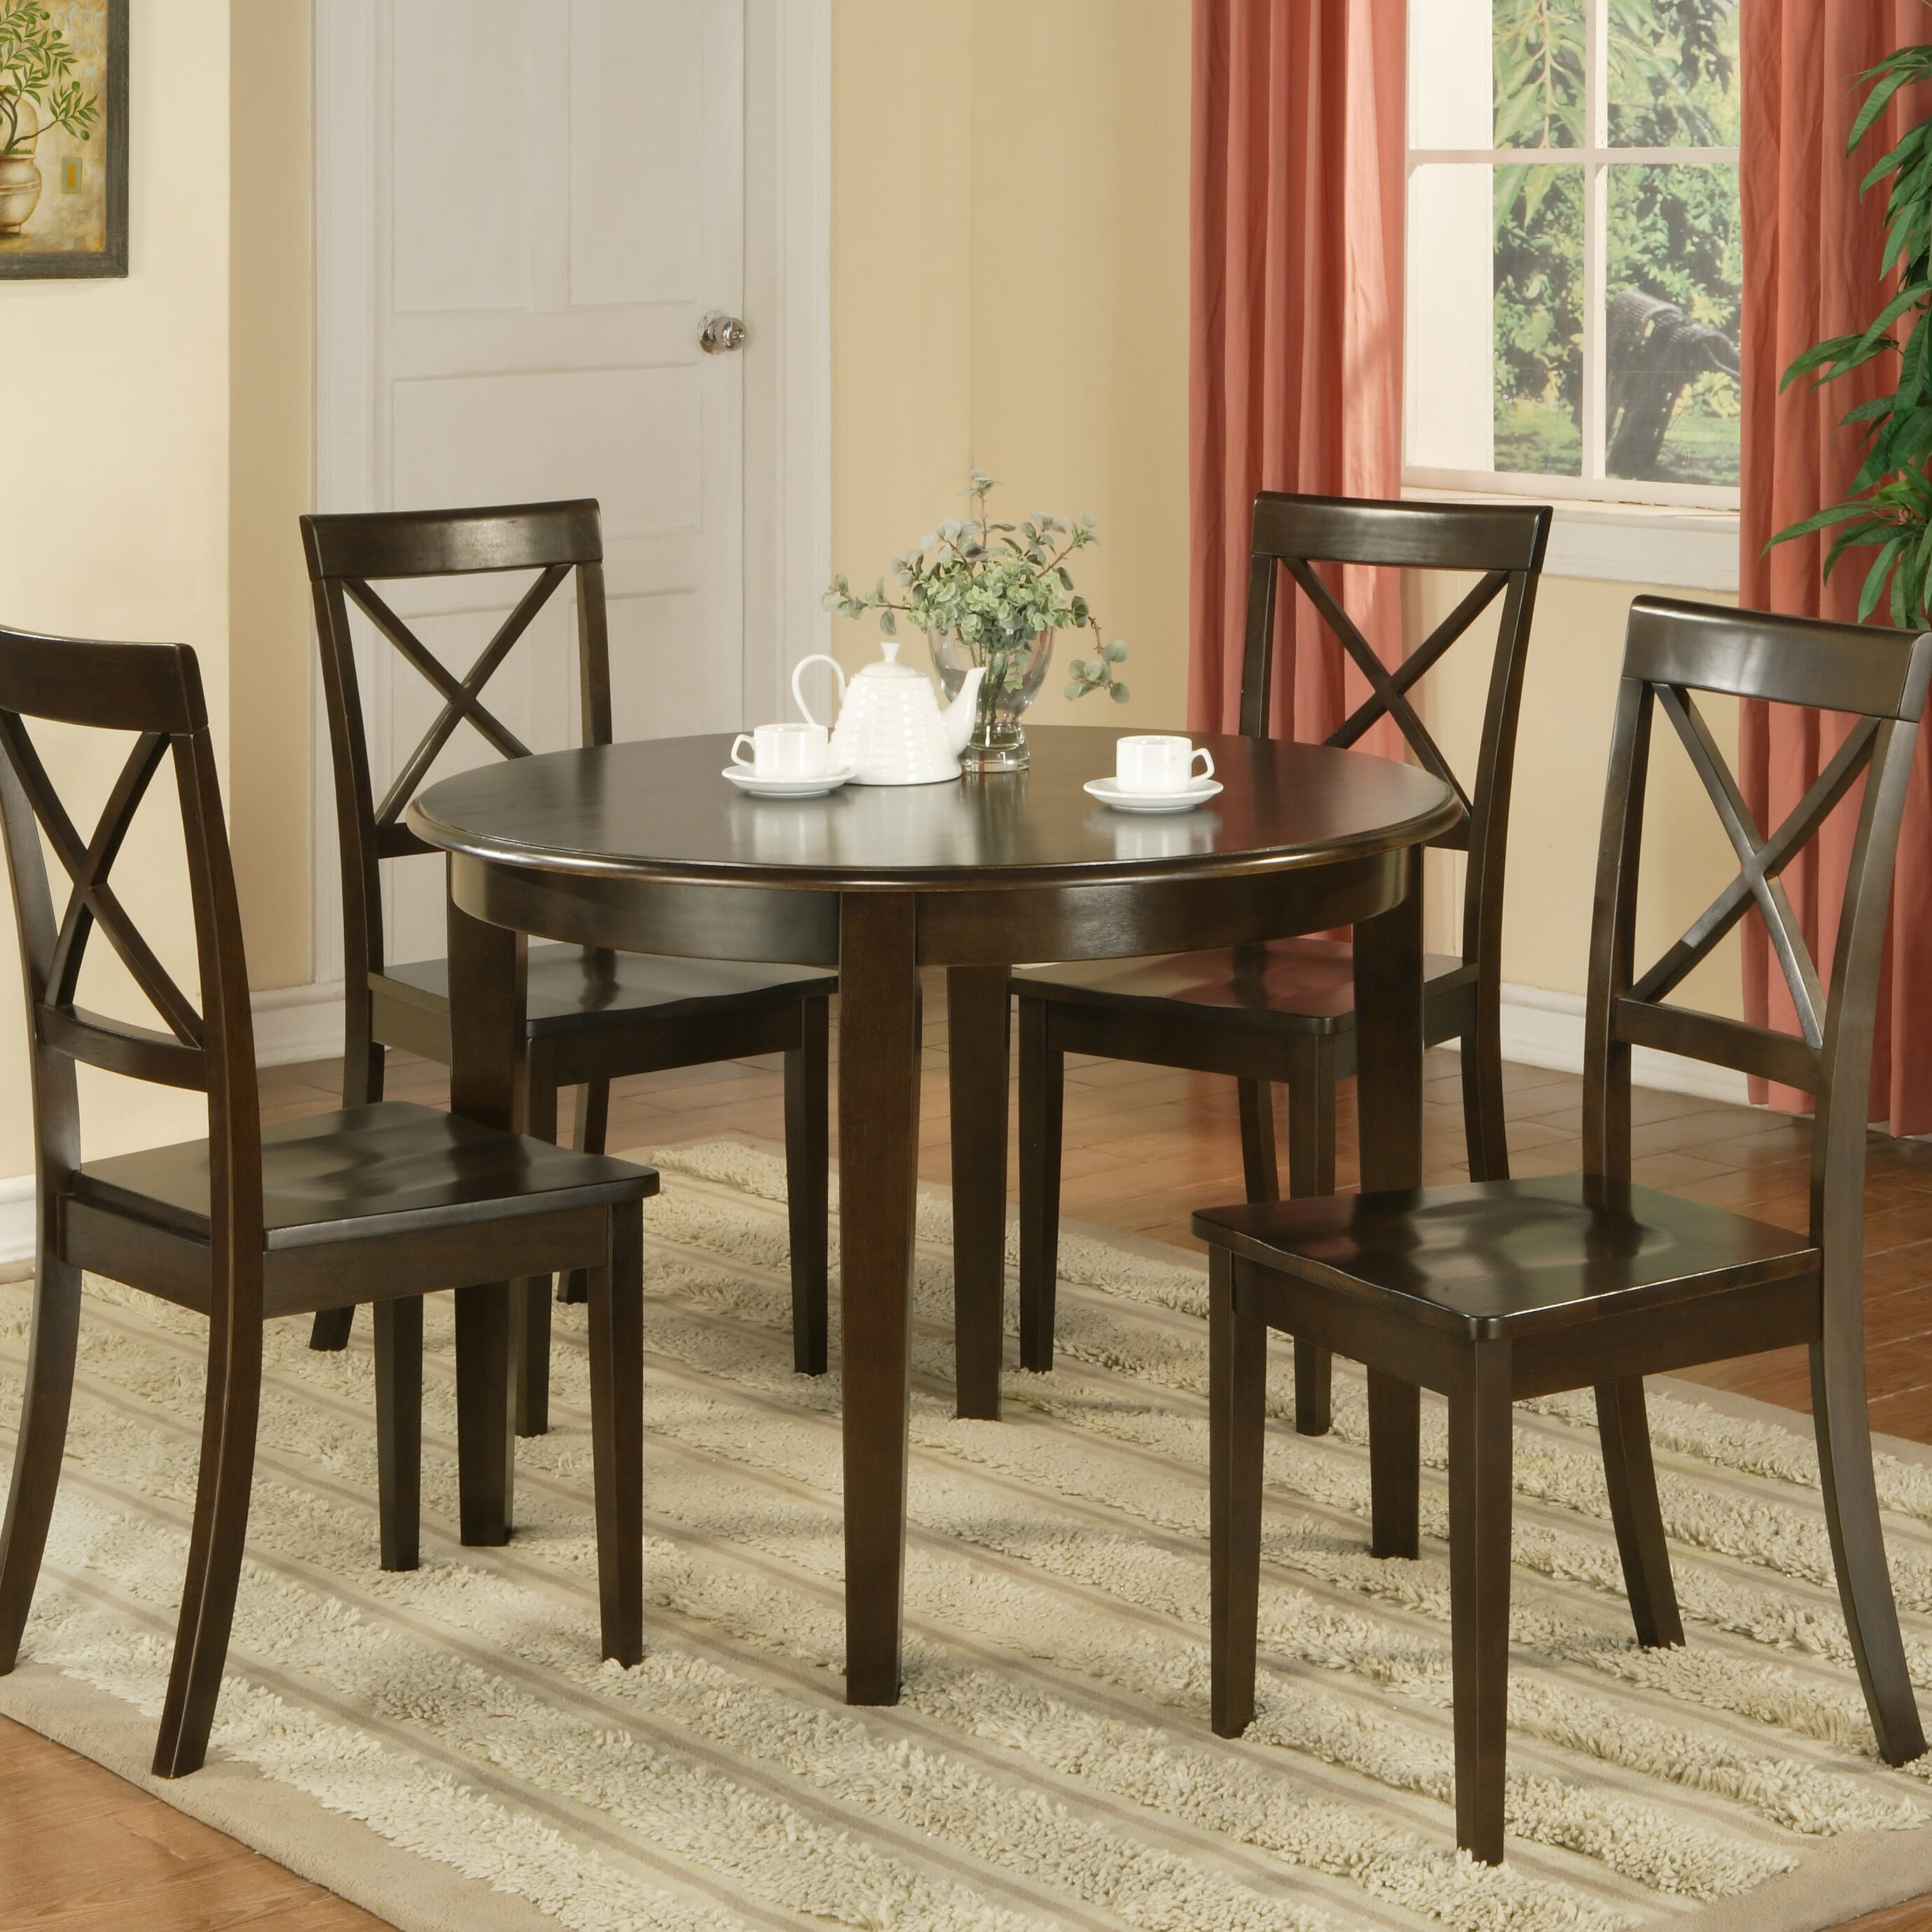 East west boston dining table reviews wayfair